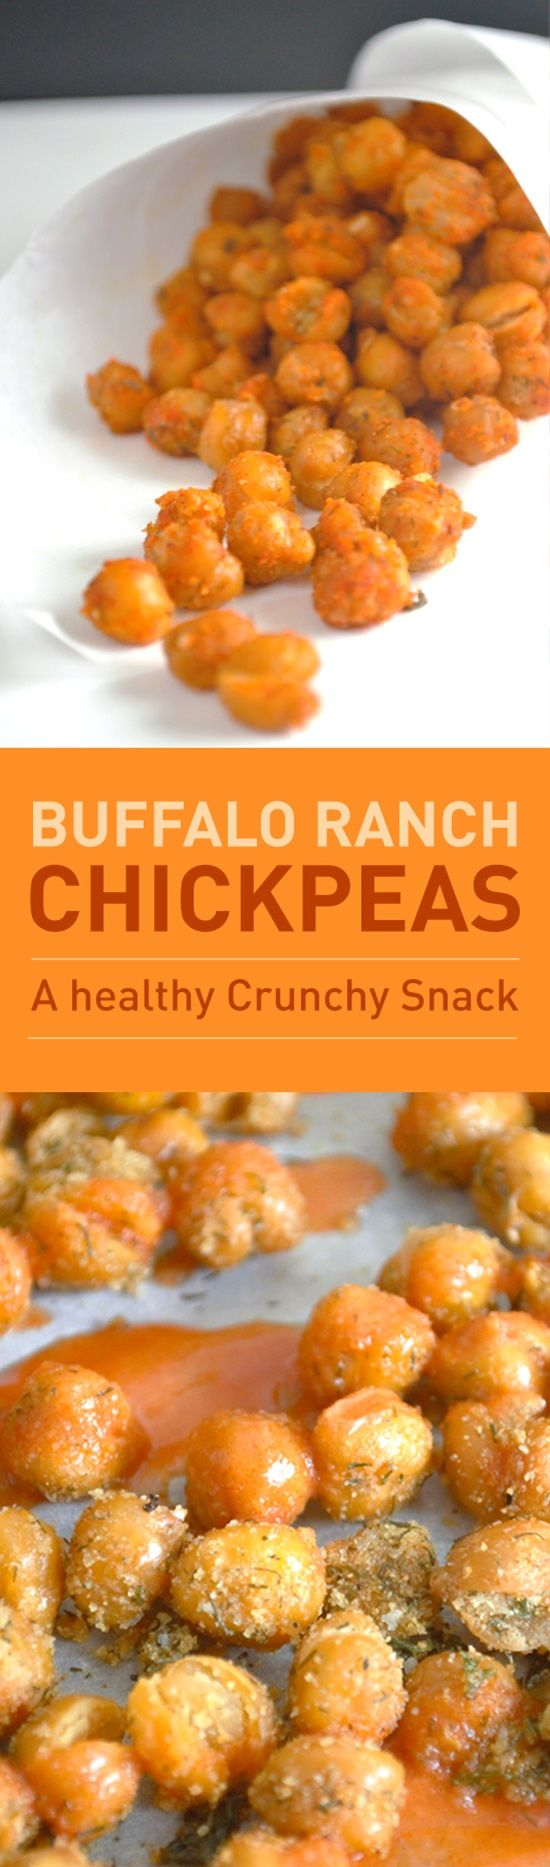 Cool ranch dressing with crispy spicy buffalo wings are a classic comfort food combination. These chickpeas make it possible to enjoy the flavors of buffalo and ranch without the fried chicken wing. Plus they even give you that nice crunch.